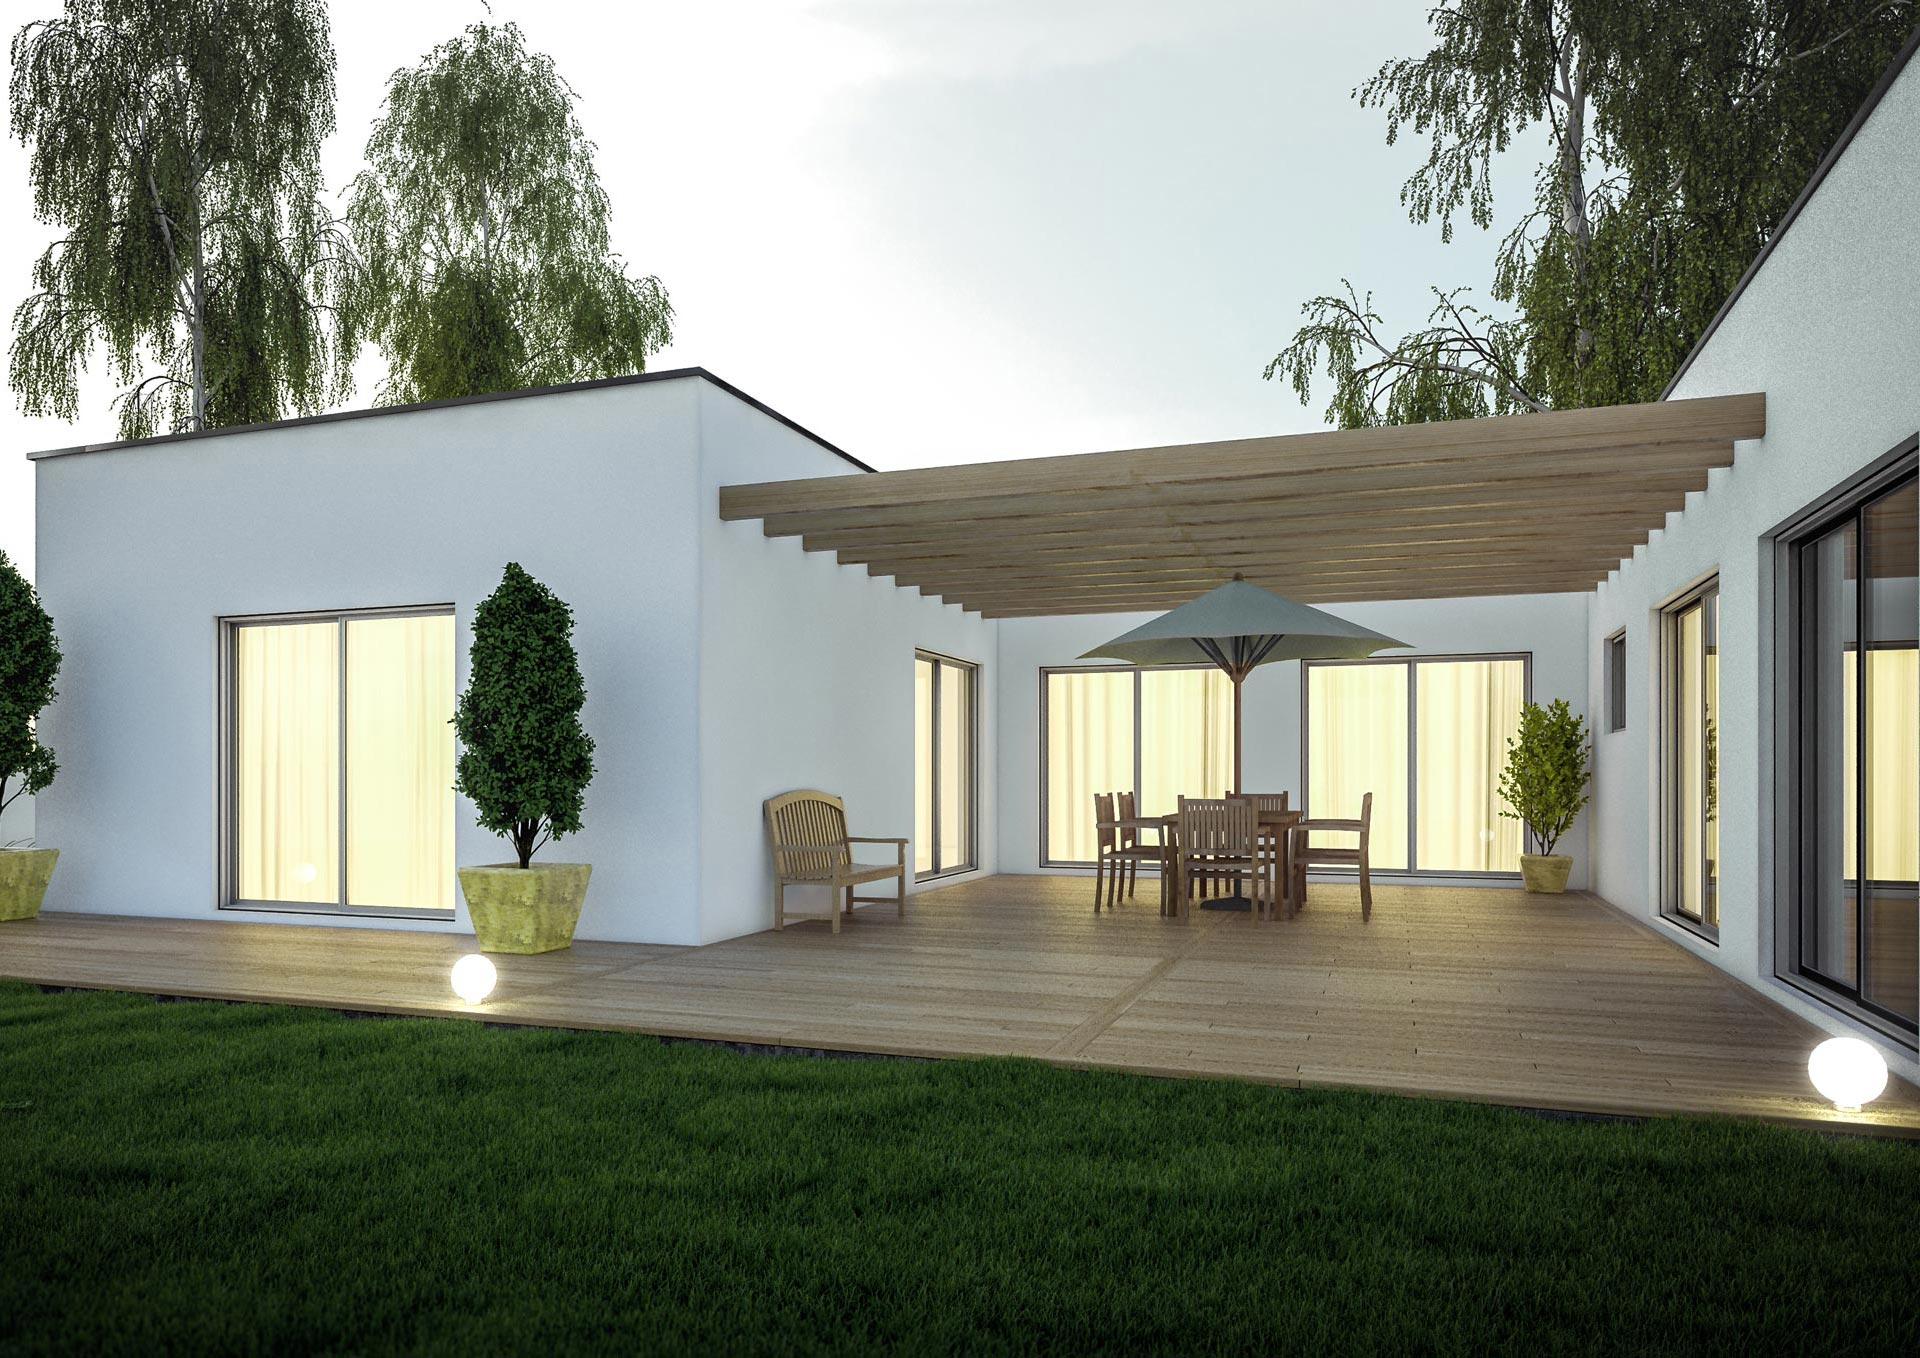 Extension de maison design pour agrandir sa maison - Photo terrasse maison ...